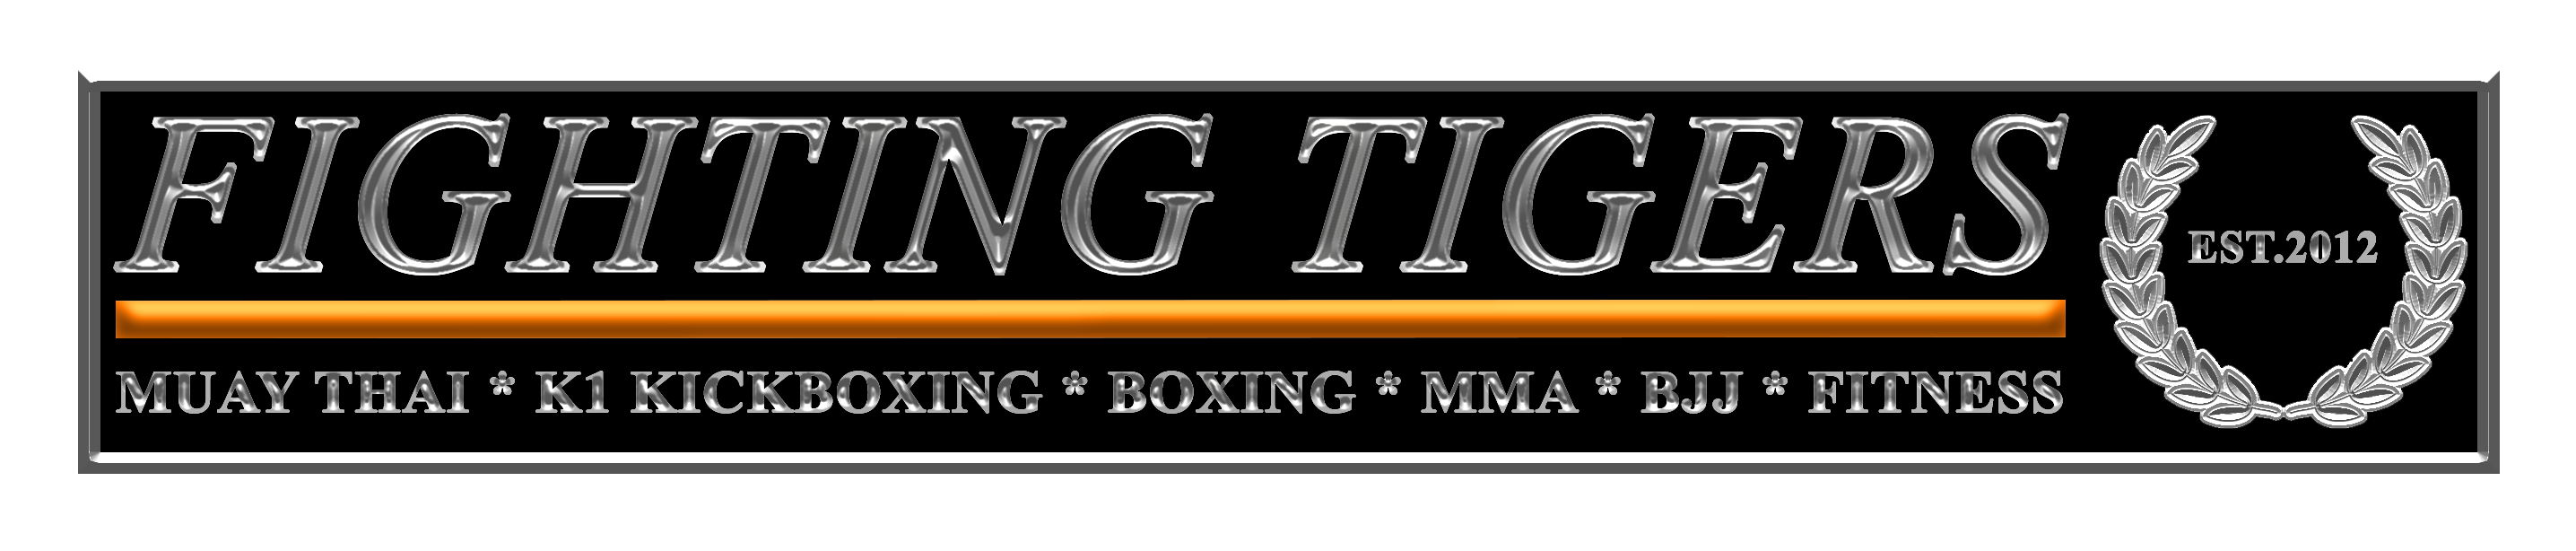 Fighting Tigers Gym - Martial Arts Classes in St Leonards On Sea